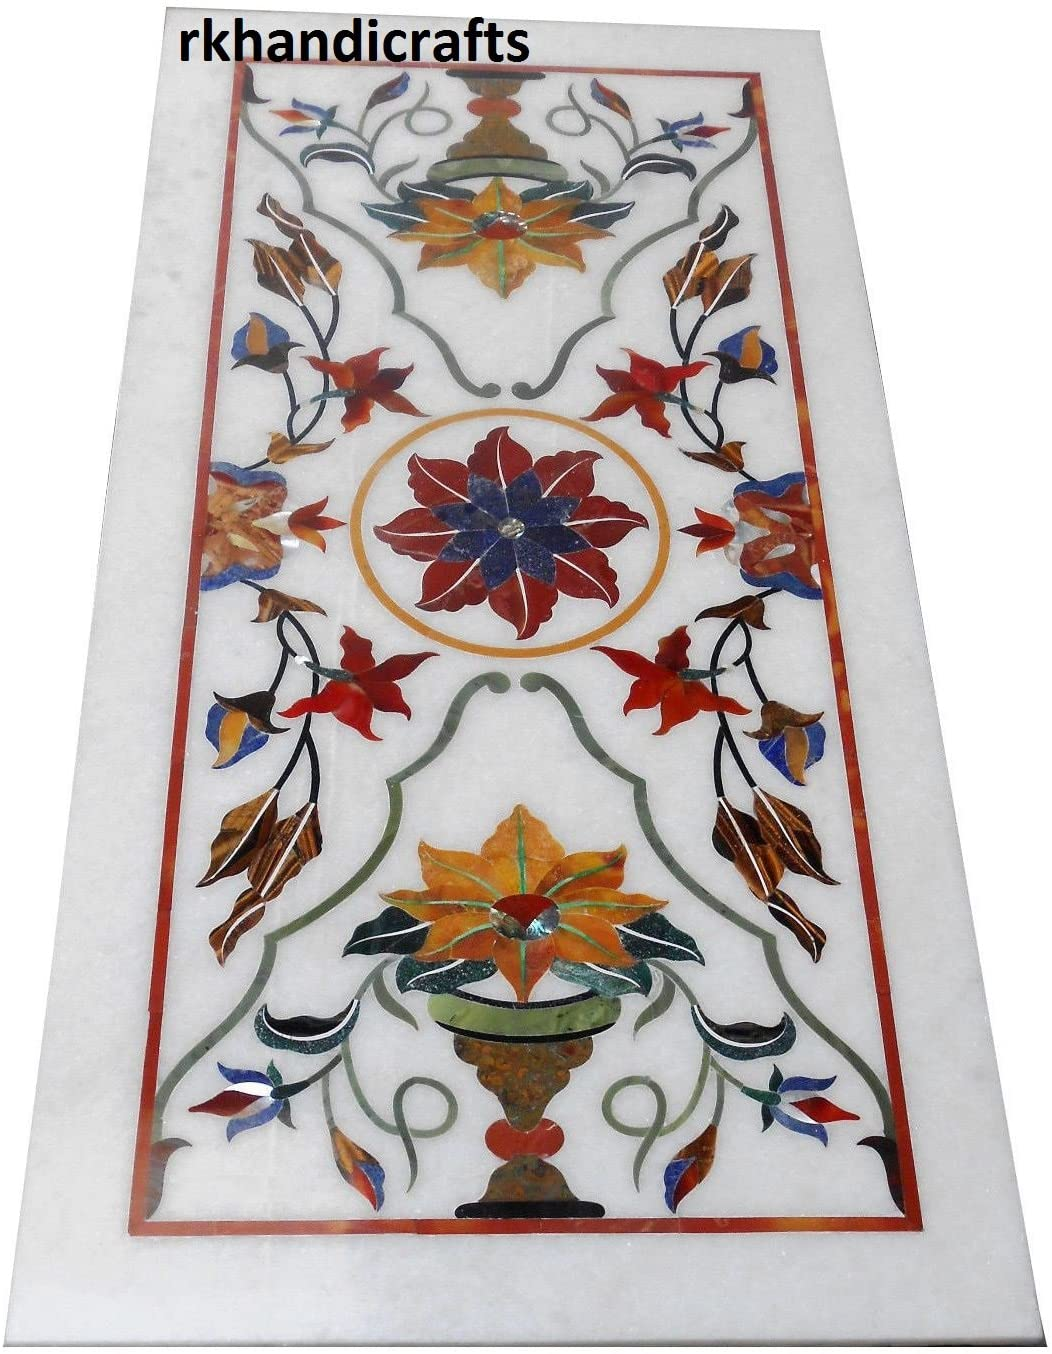 White Dining Table Top Sofa Table Inlay Work with Semi Precious Multi Colors Stones Royal Home Interior 30 x 60 Inches